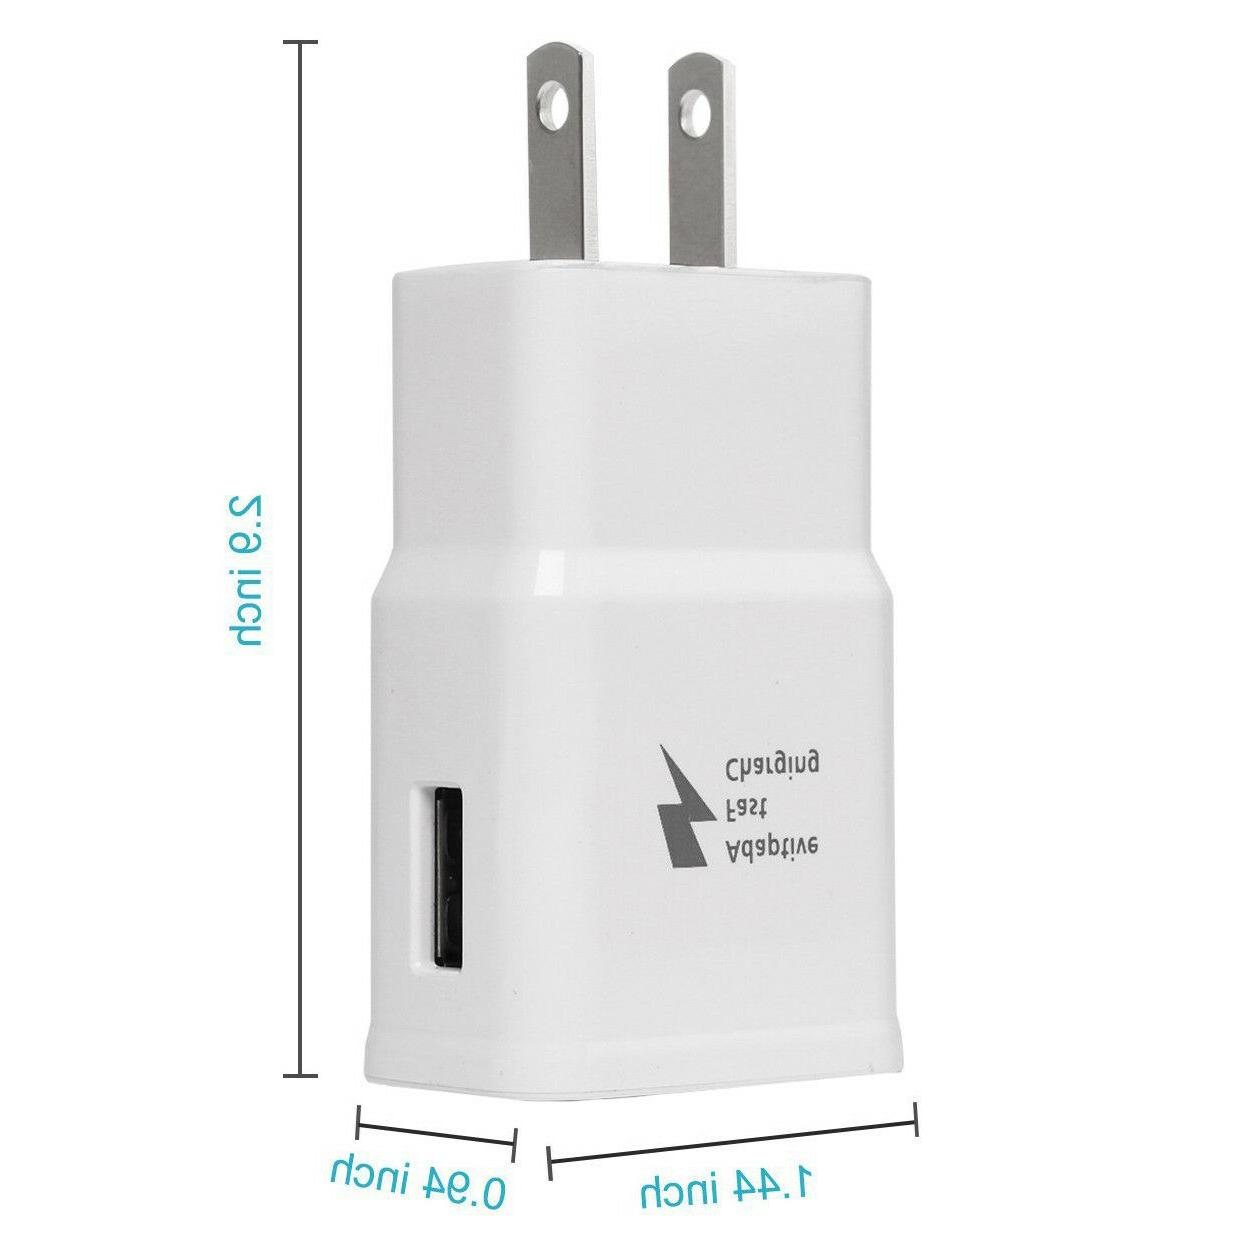 Original Rapid Fast Charger for Samsung S7 5 Note 4